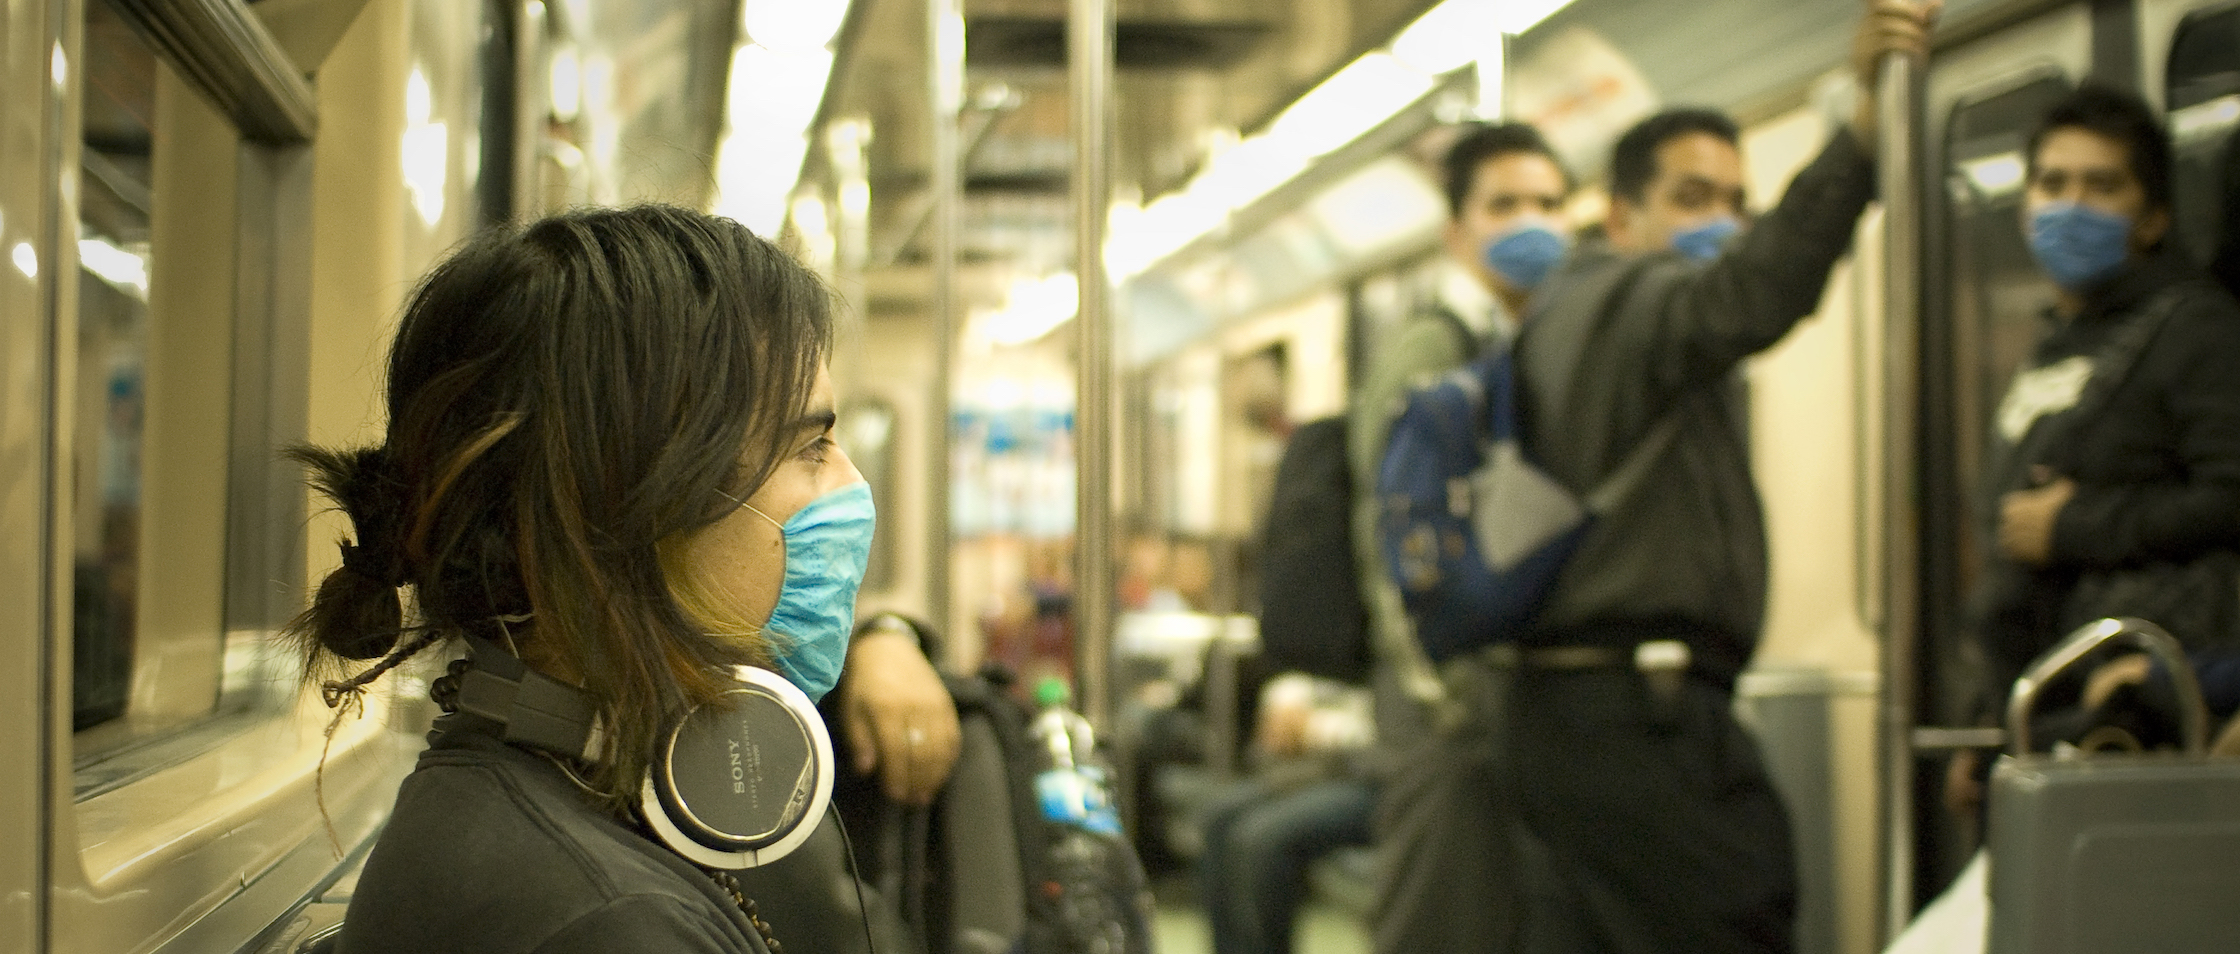 Women and men wearing face masks while riding public transportation